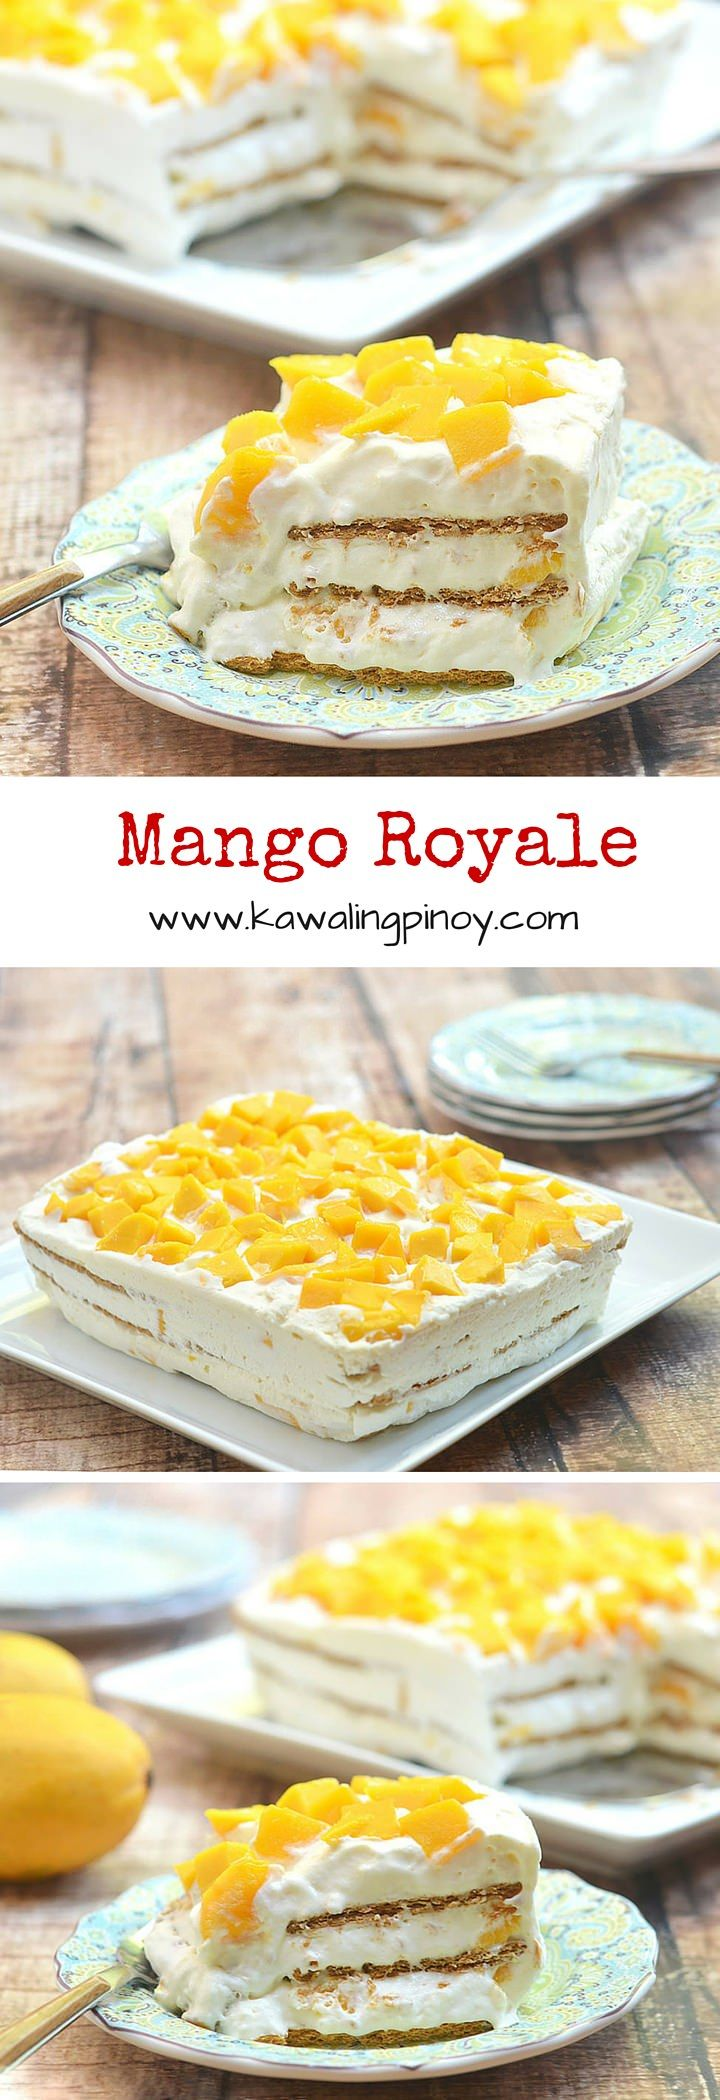 Mango Royale is a type of ice box cake made with layers of whipped ...